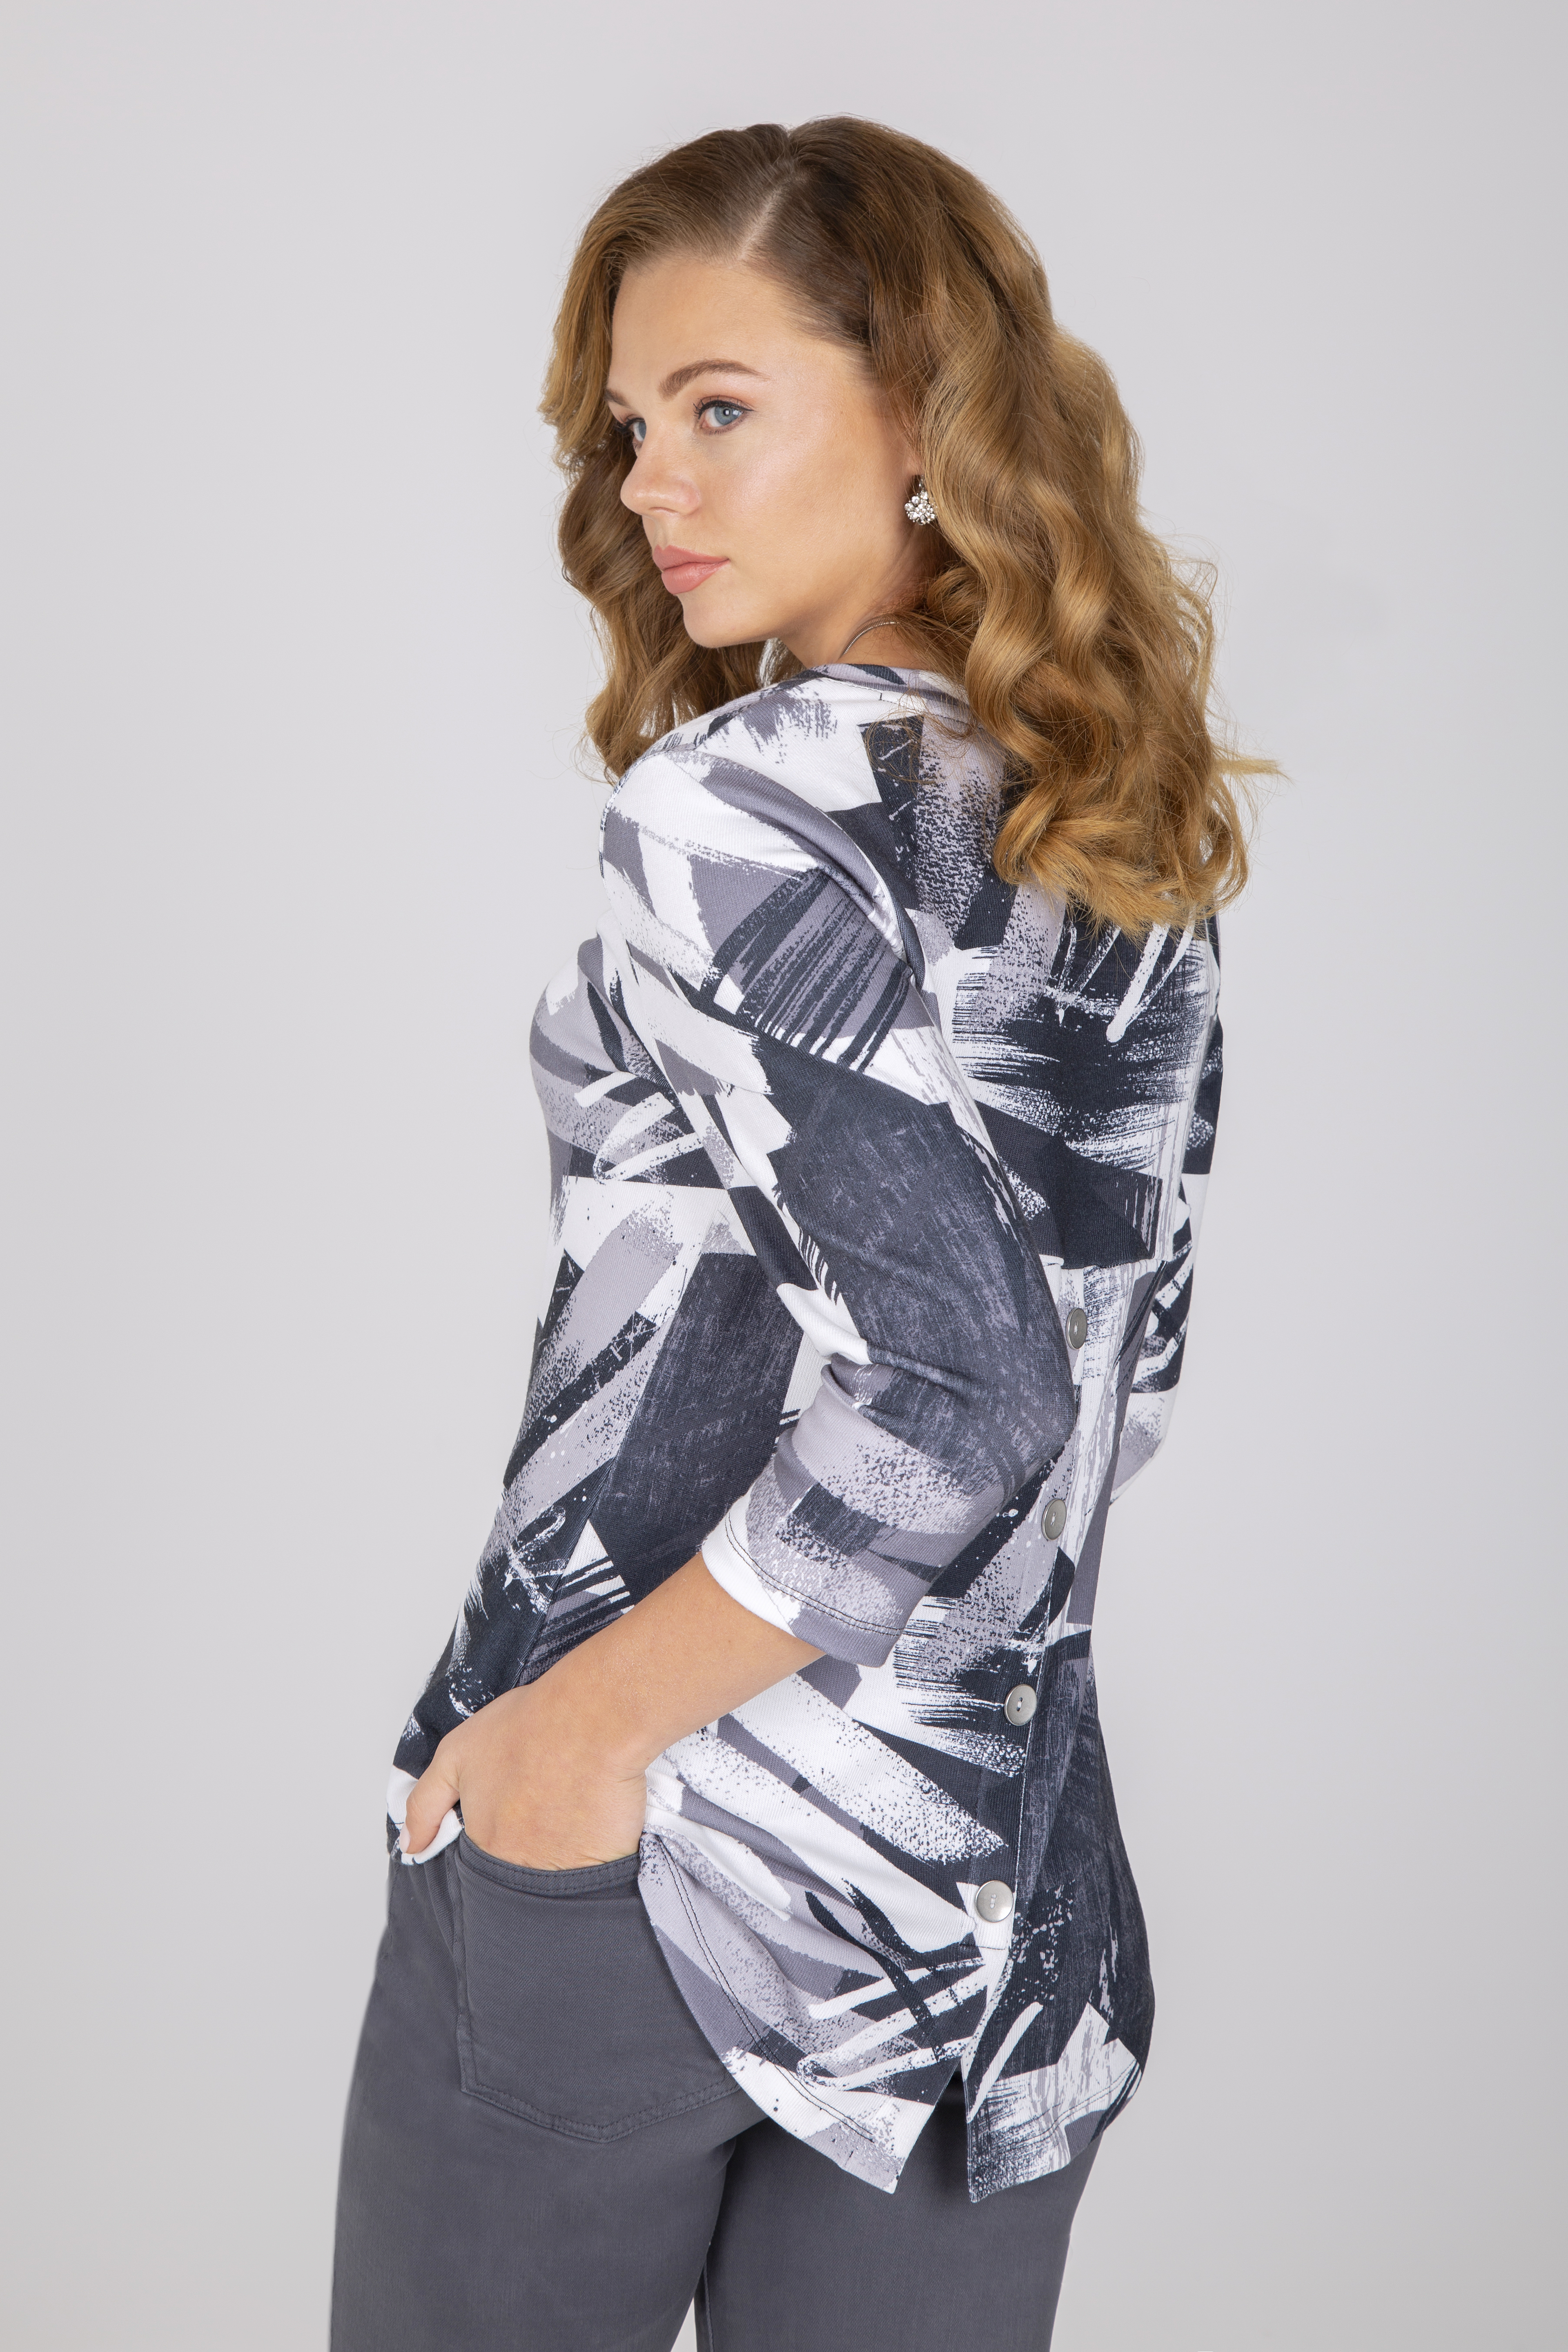 Simply Art Dolcezza: High Low Back Buttoned Abstract Layer No. 3 Art Tunic SimplyArt_Dolcezza_71651